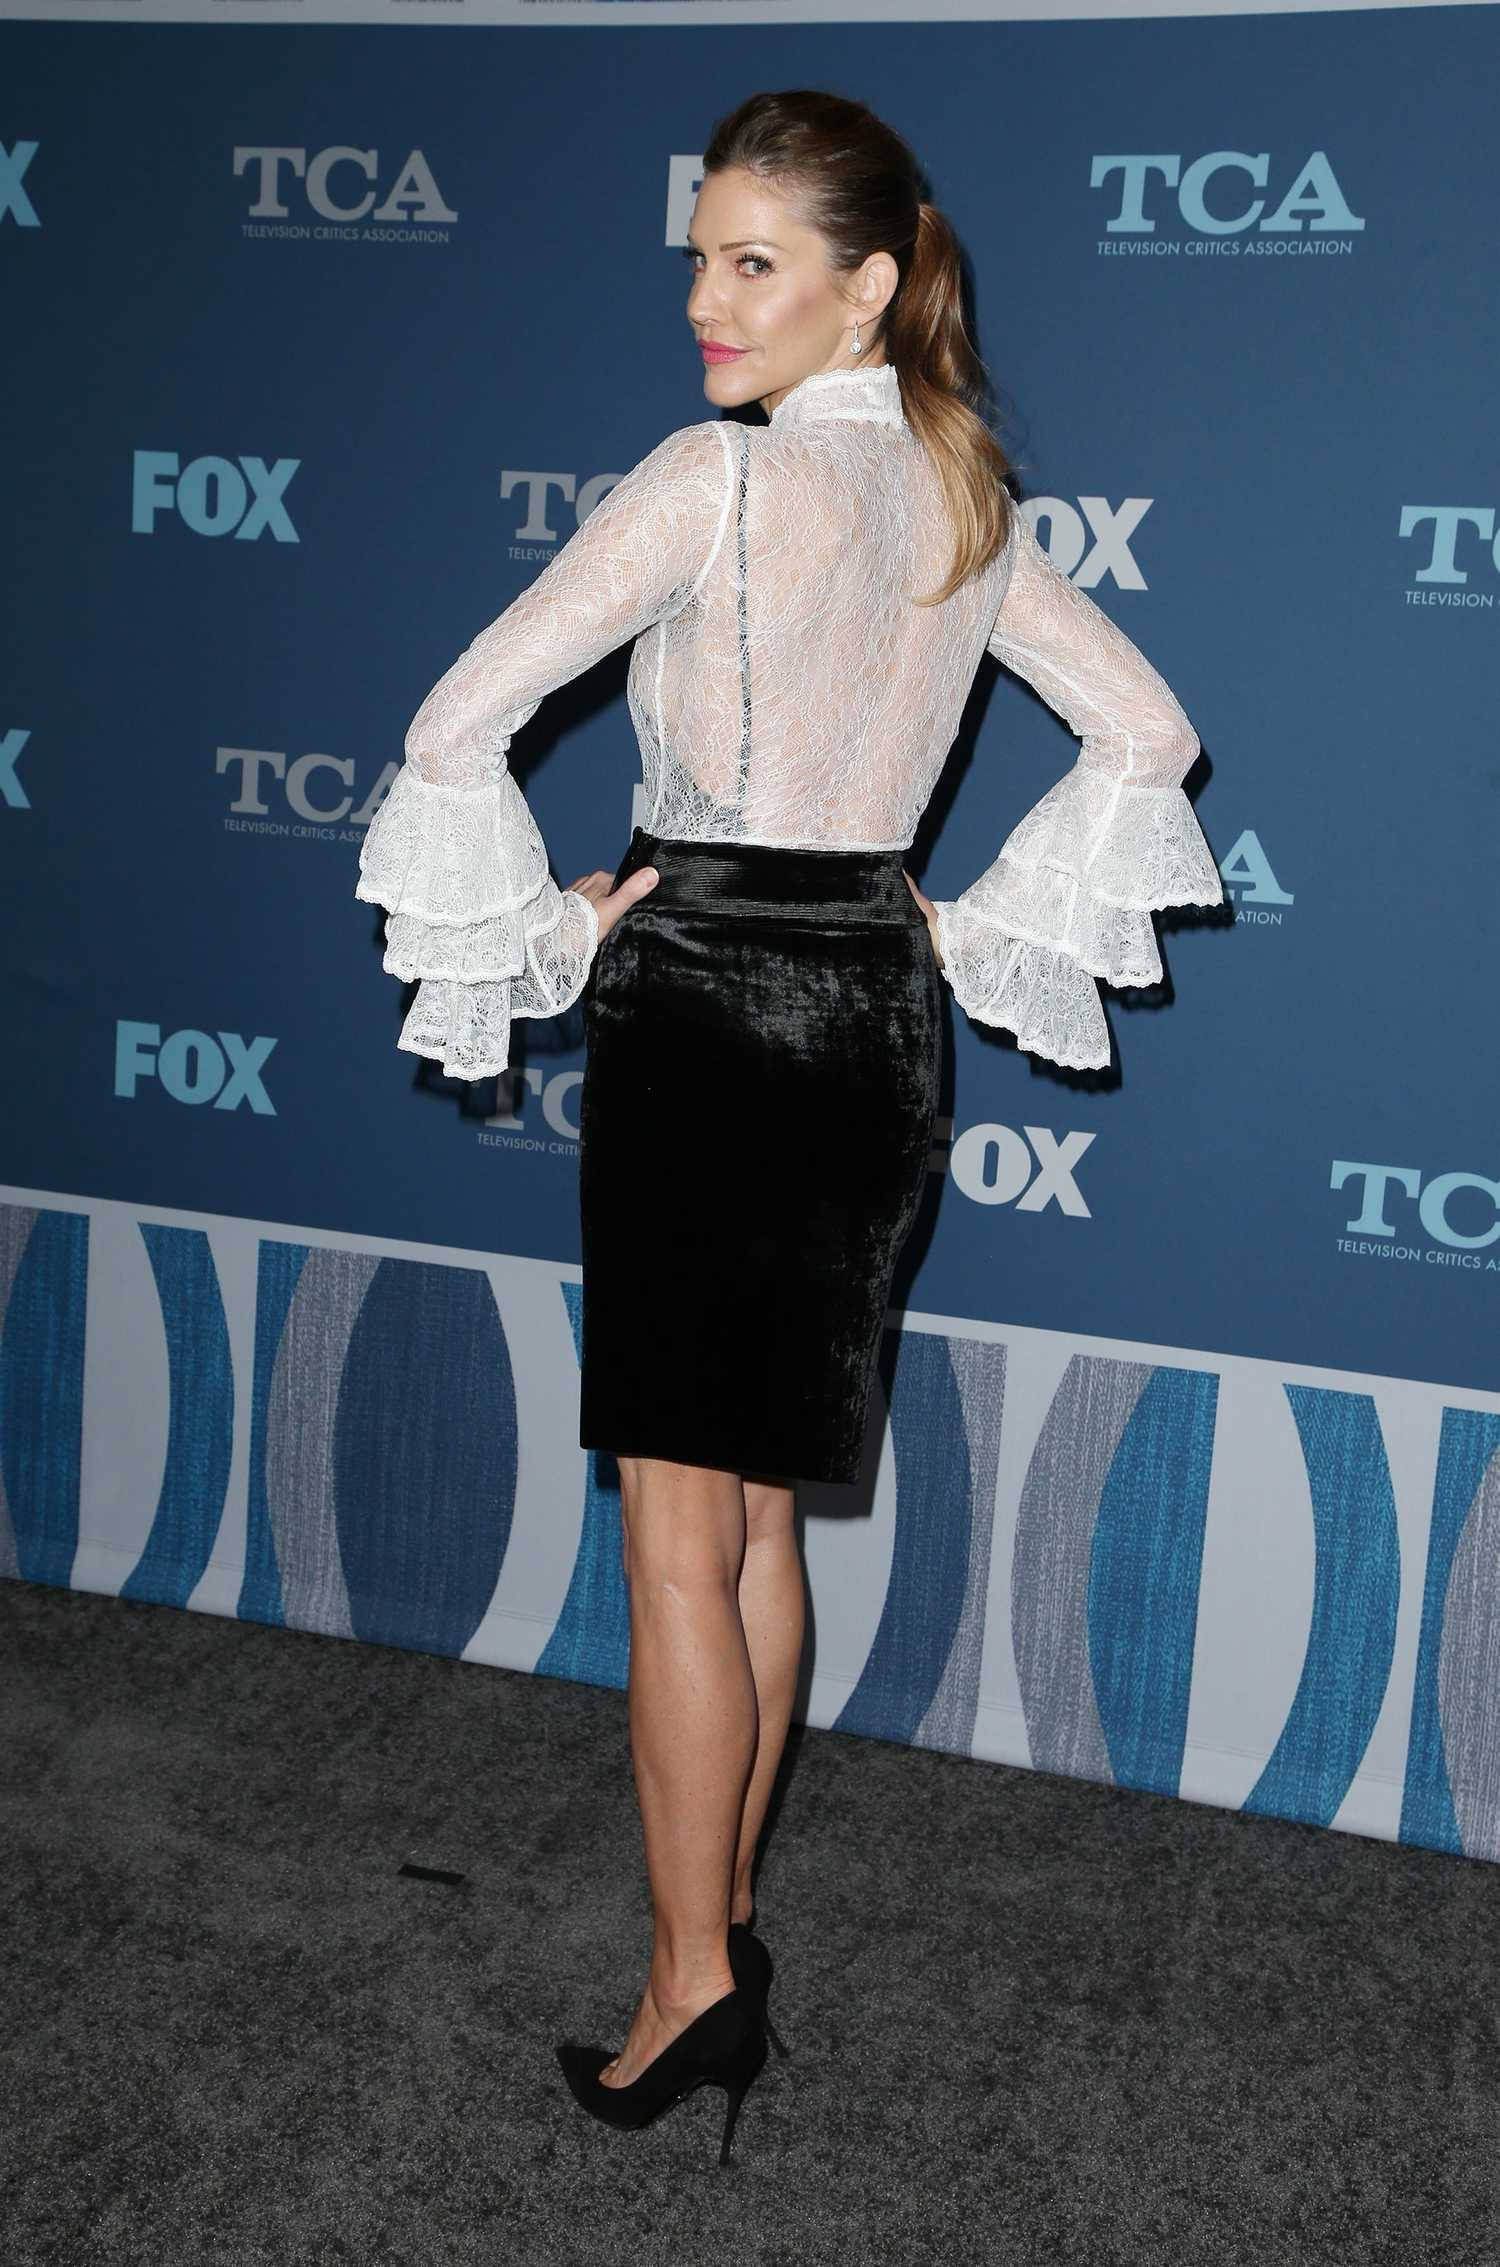 tricia helfer at the fox winter tca 2018 all